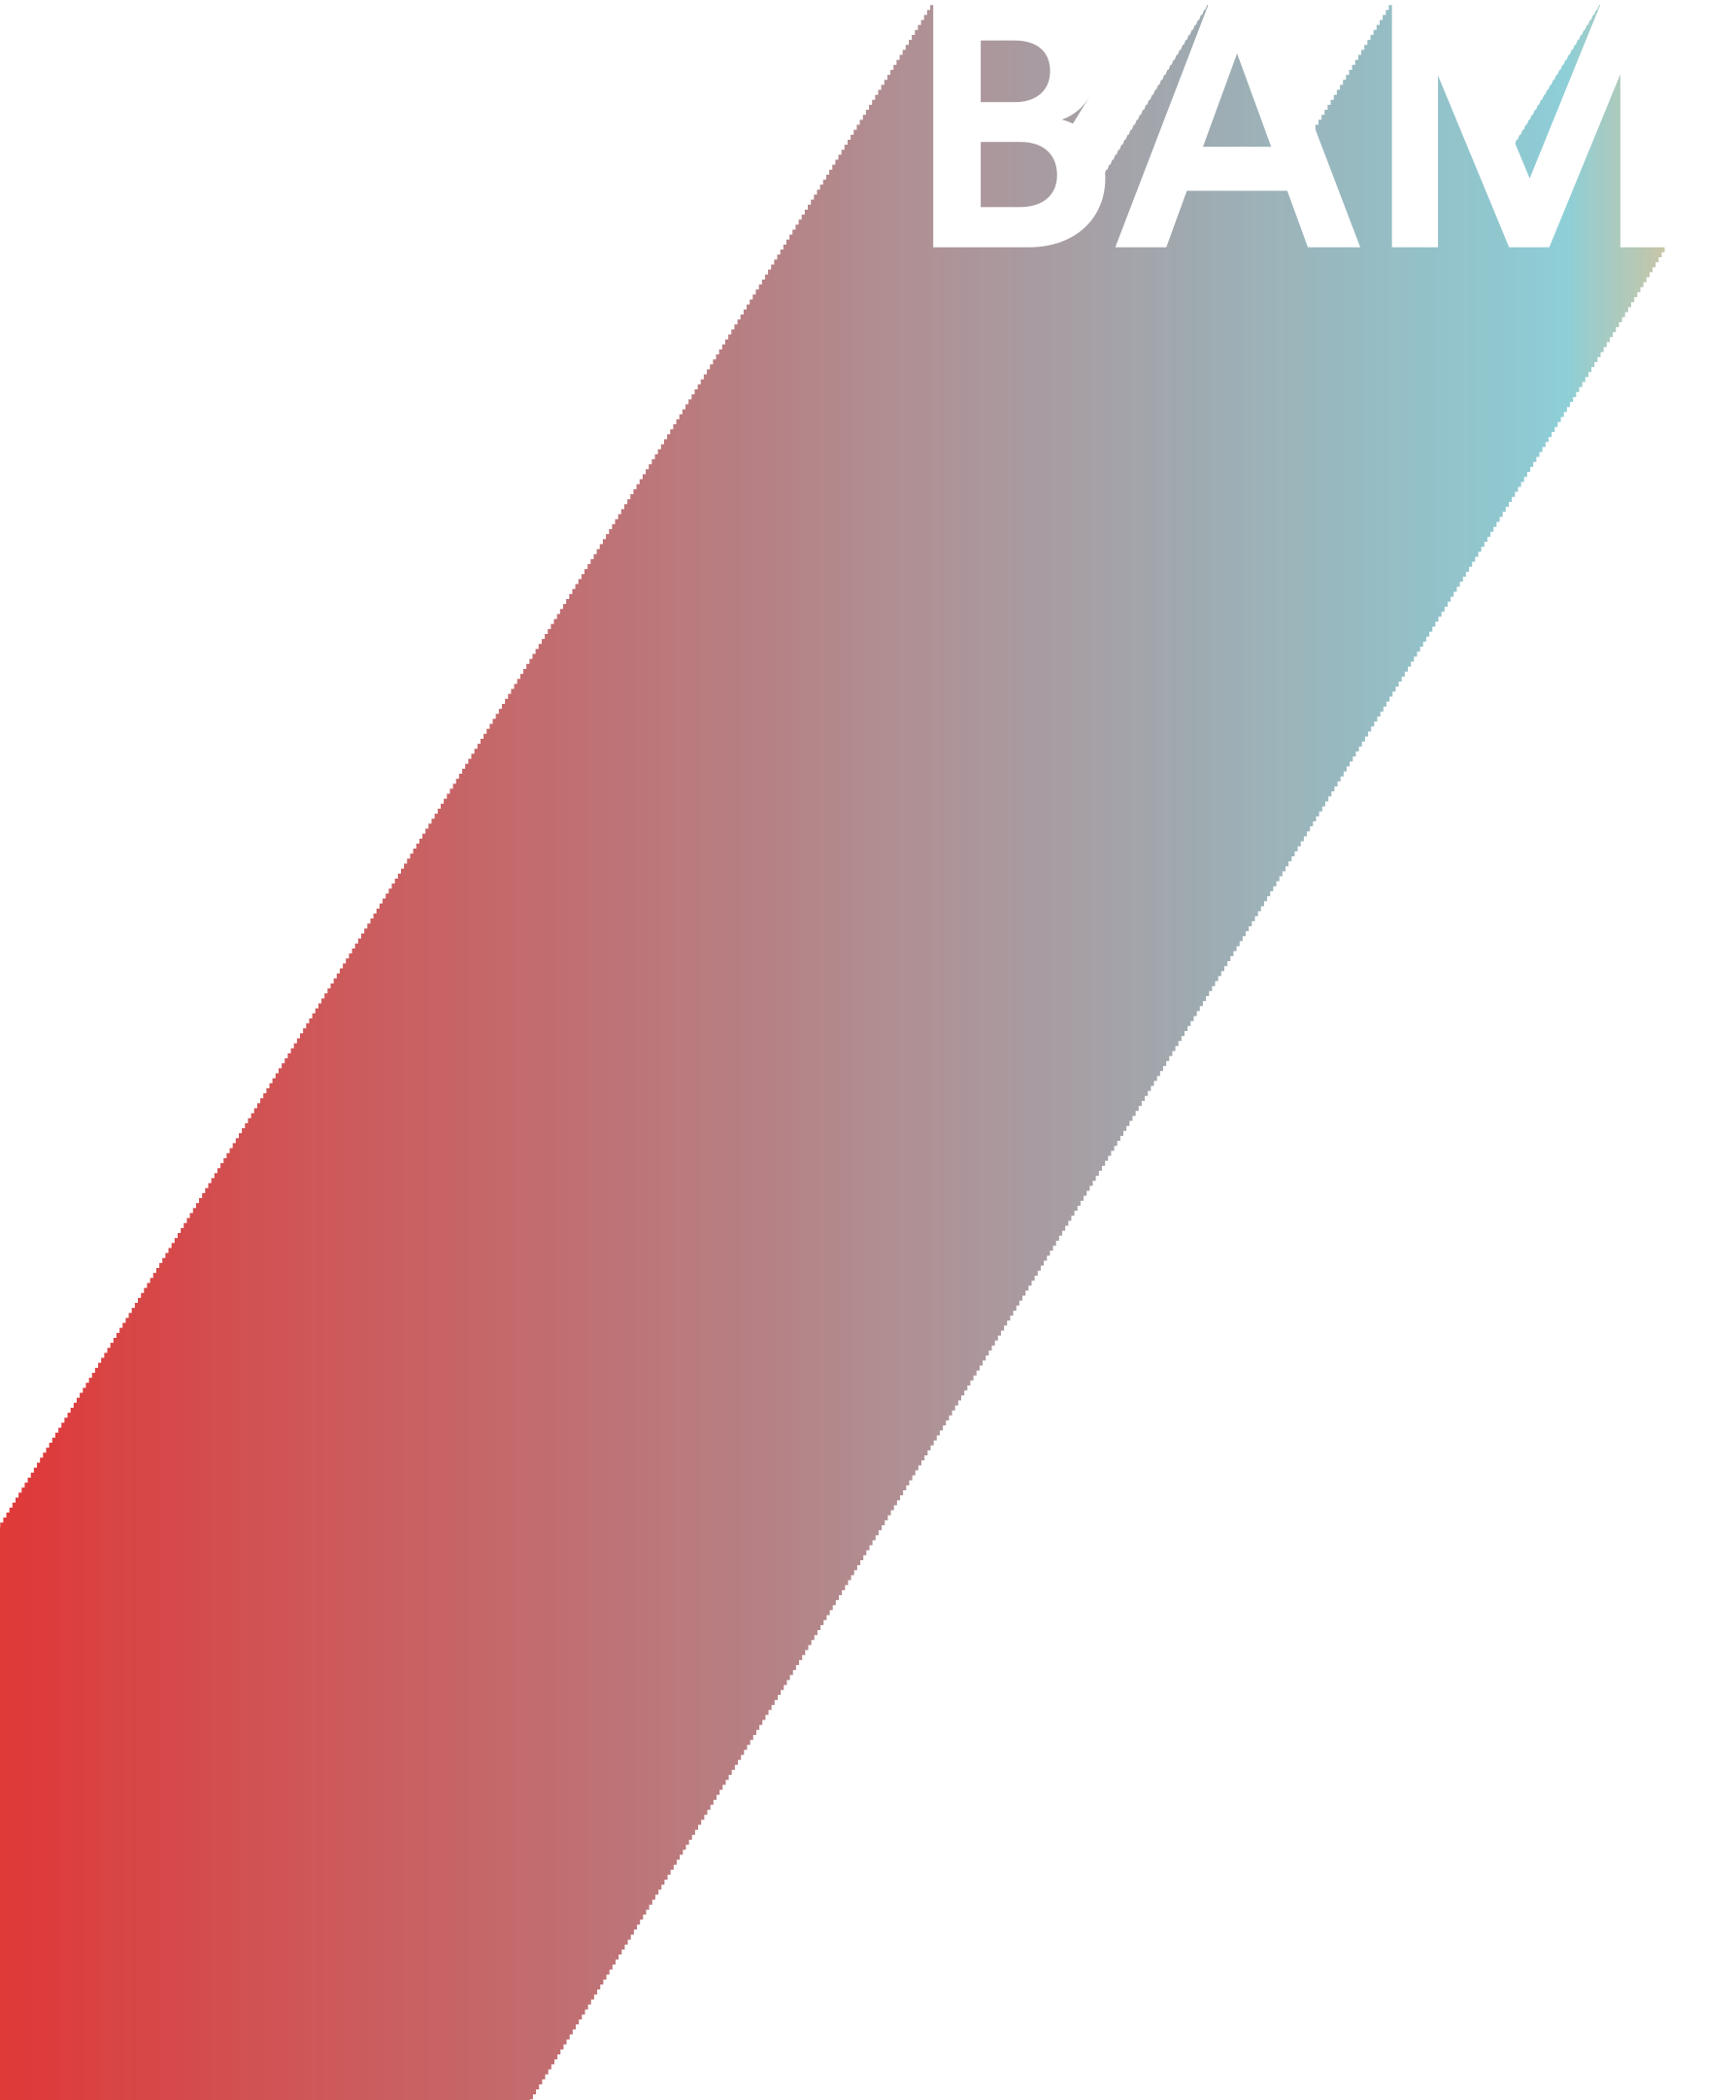 BAM projects